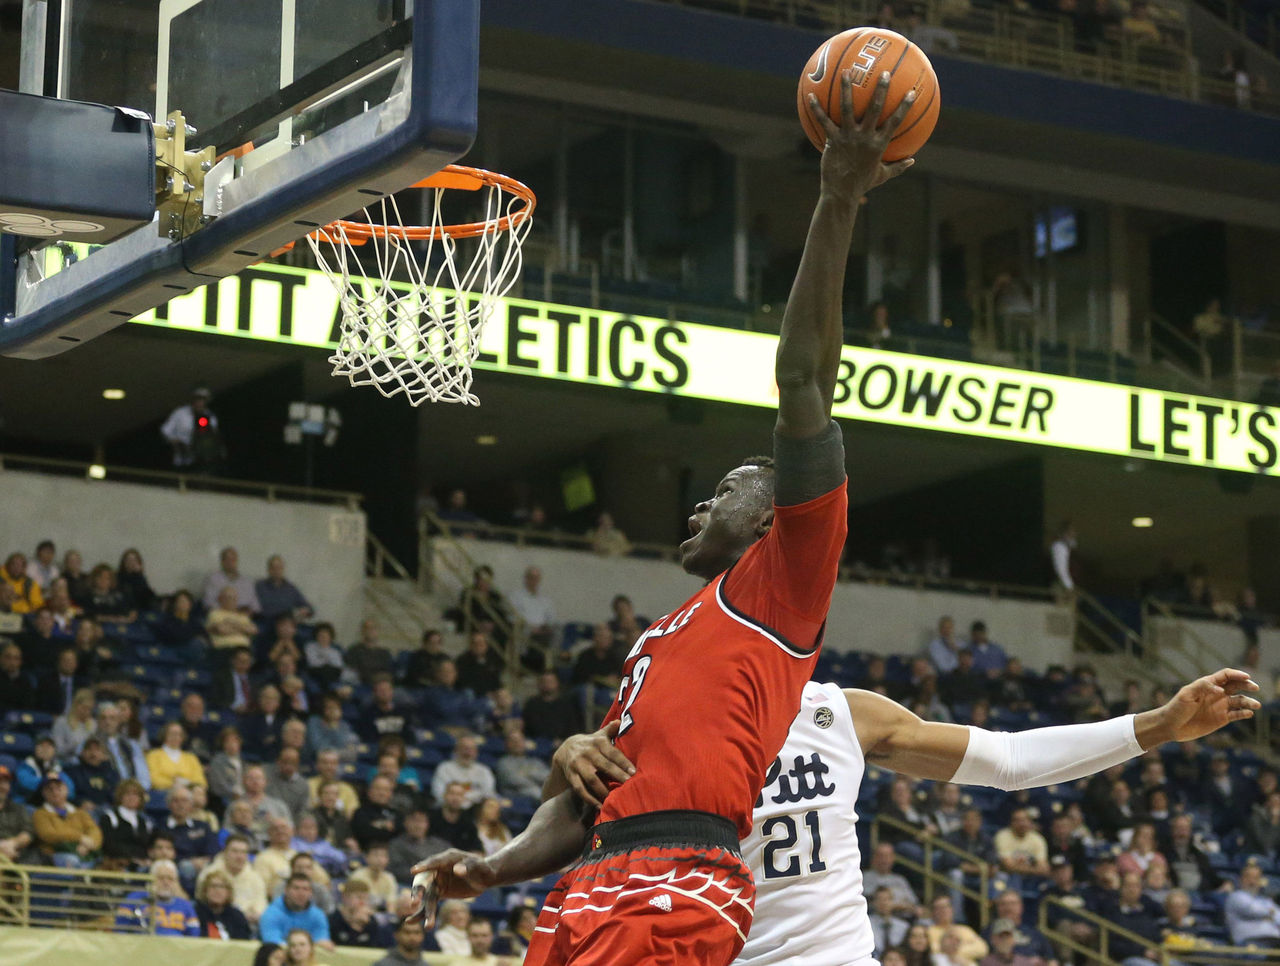 Cropped 2017 01 25t025928z 1423856384 nocid rtrmadp 3 ncaa basketball louisville at pittsburgh